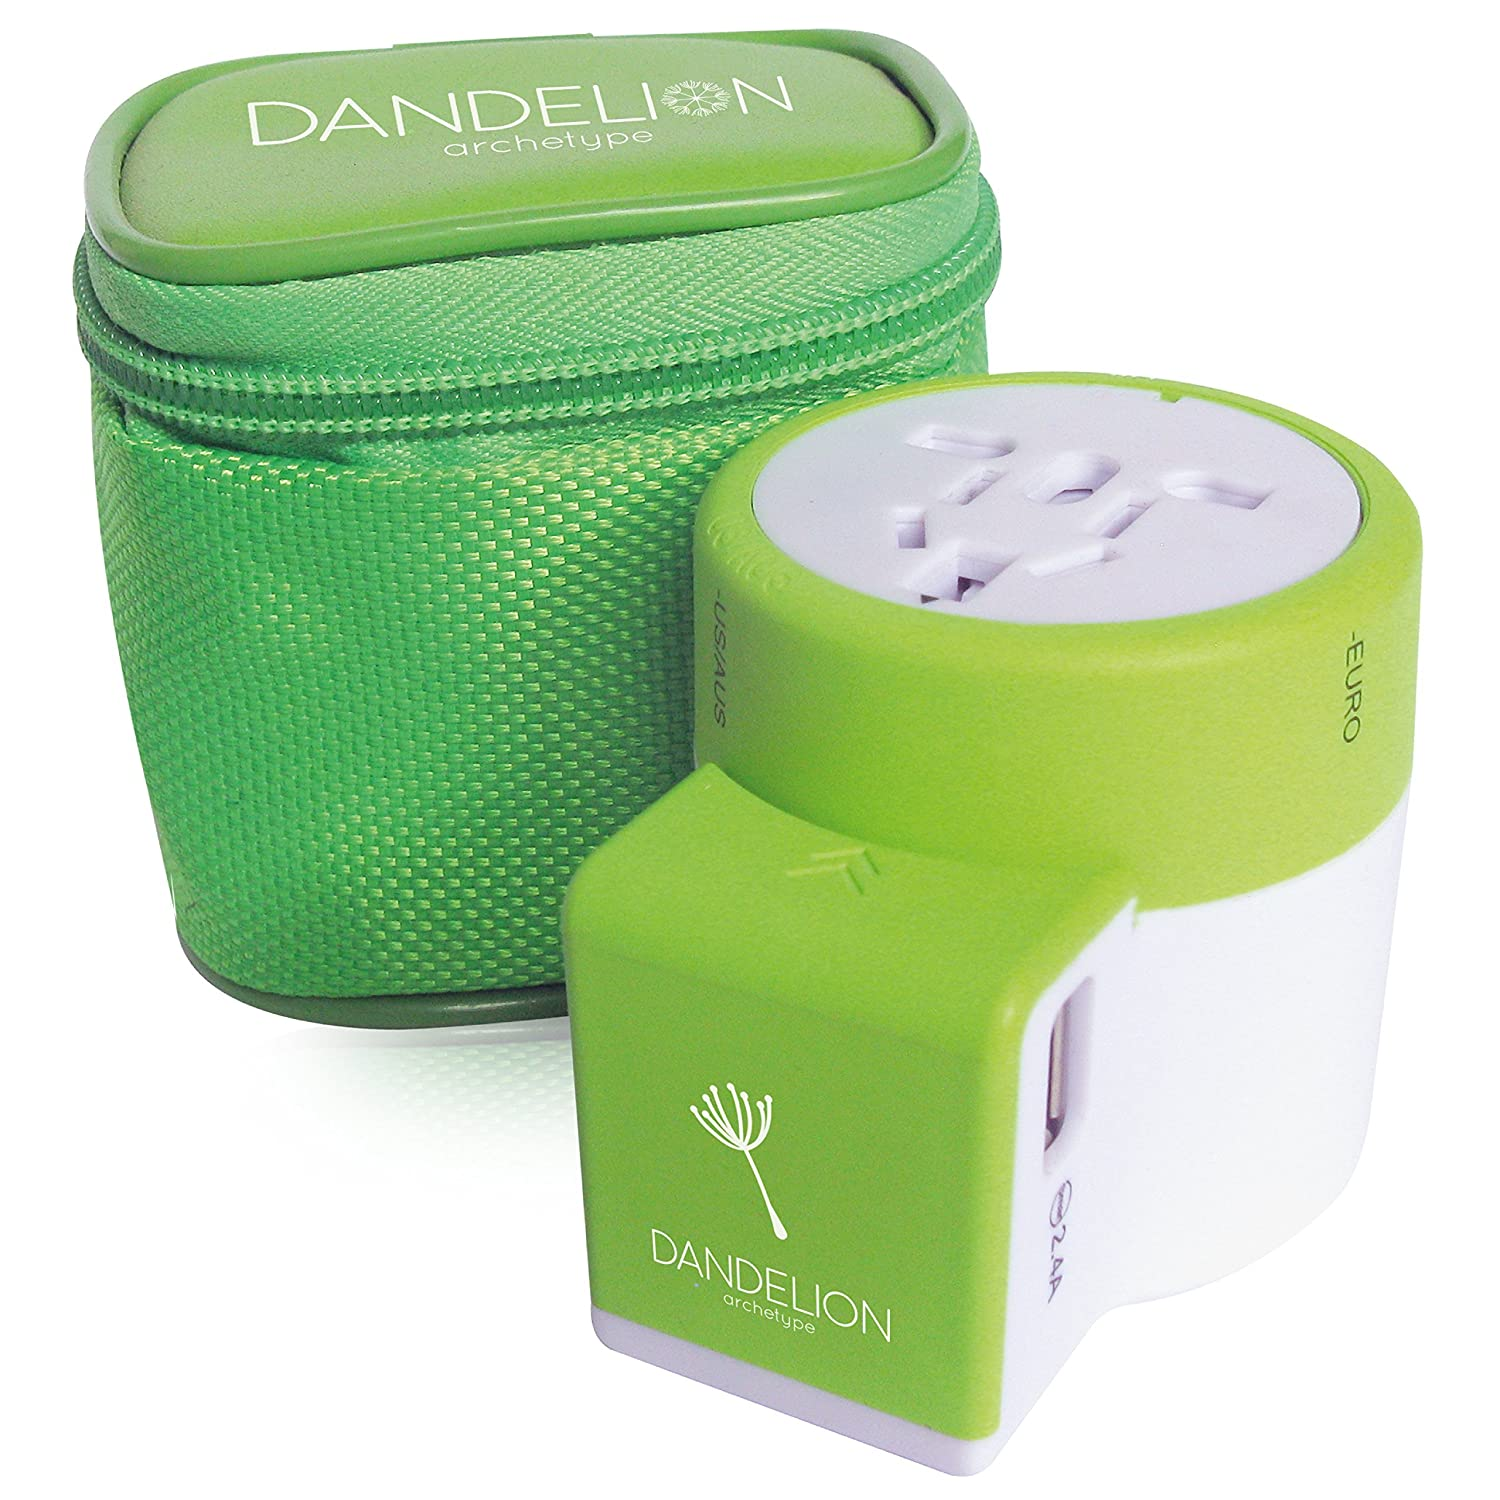 The Dandelion Travel Adapter Outlet Adapter travel product recommended by David Mitroff on Lifney.